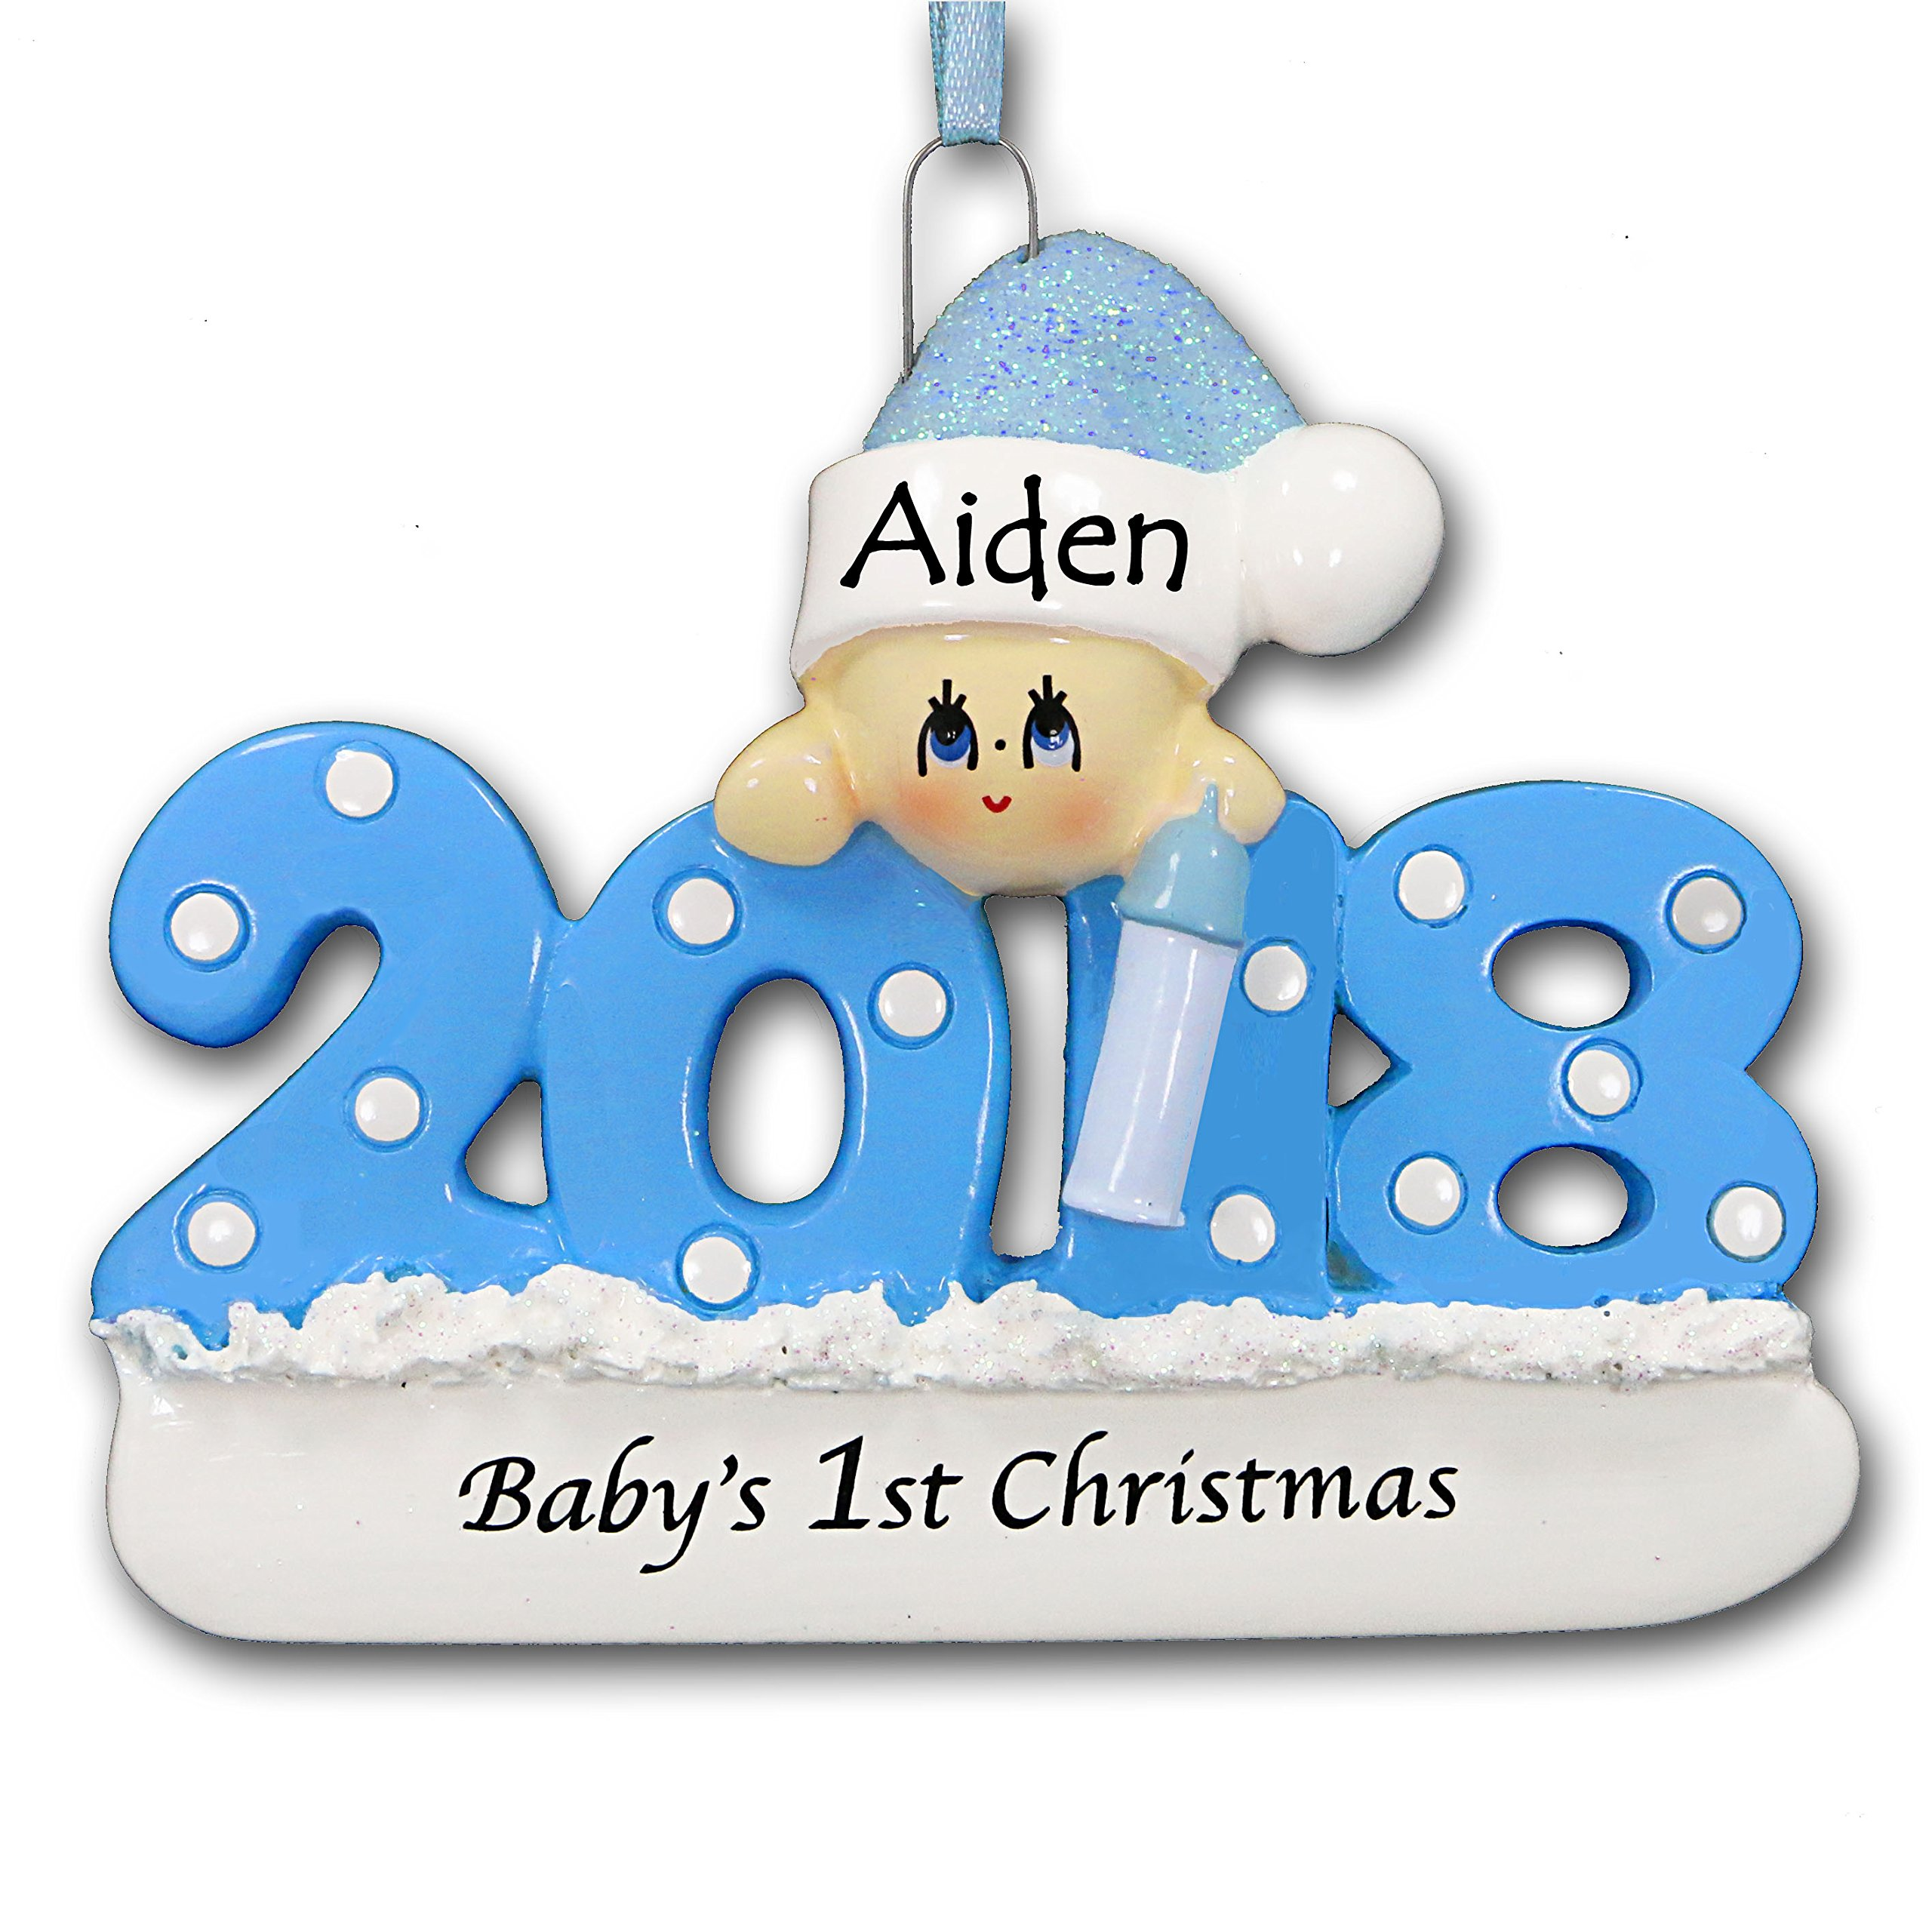 2018 Baby's First 1st Christmas Tree Ornament Gift in Blue for Baby Boy with Santa Stocking Cap Hat and Bottle - Free Name Personalization (Blue)